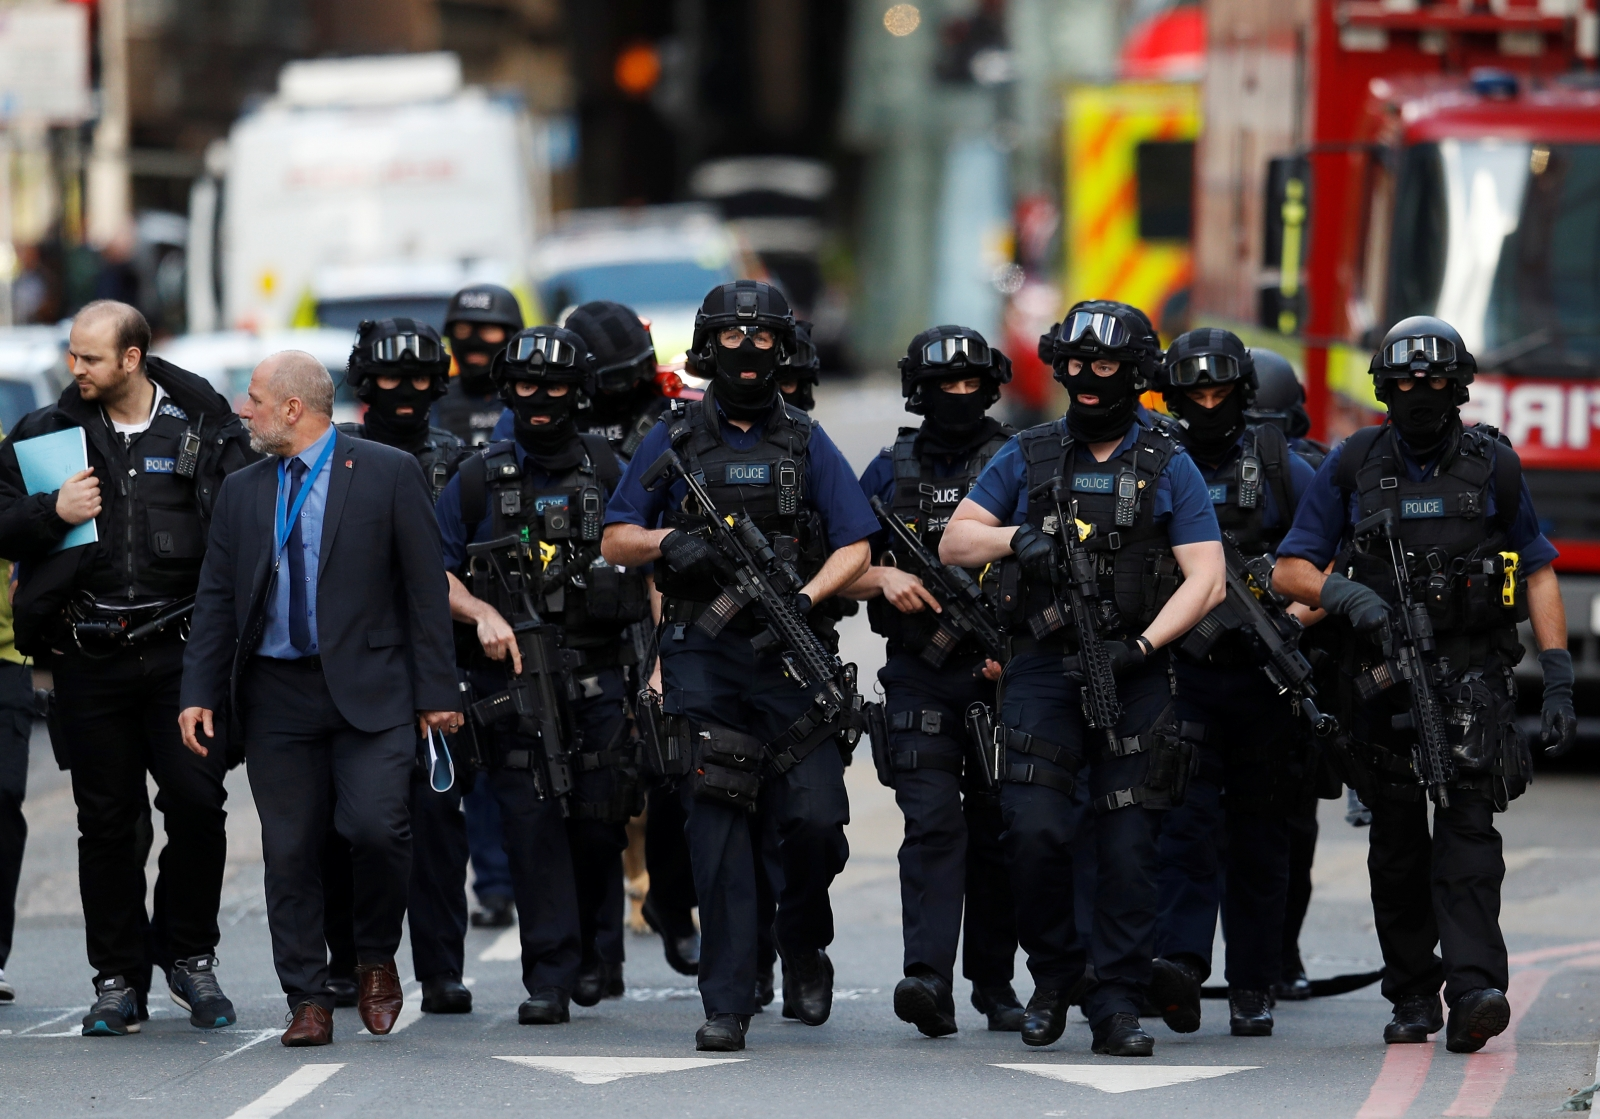 Snap poll finds 75% want British police routinely armed